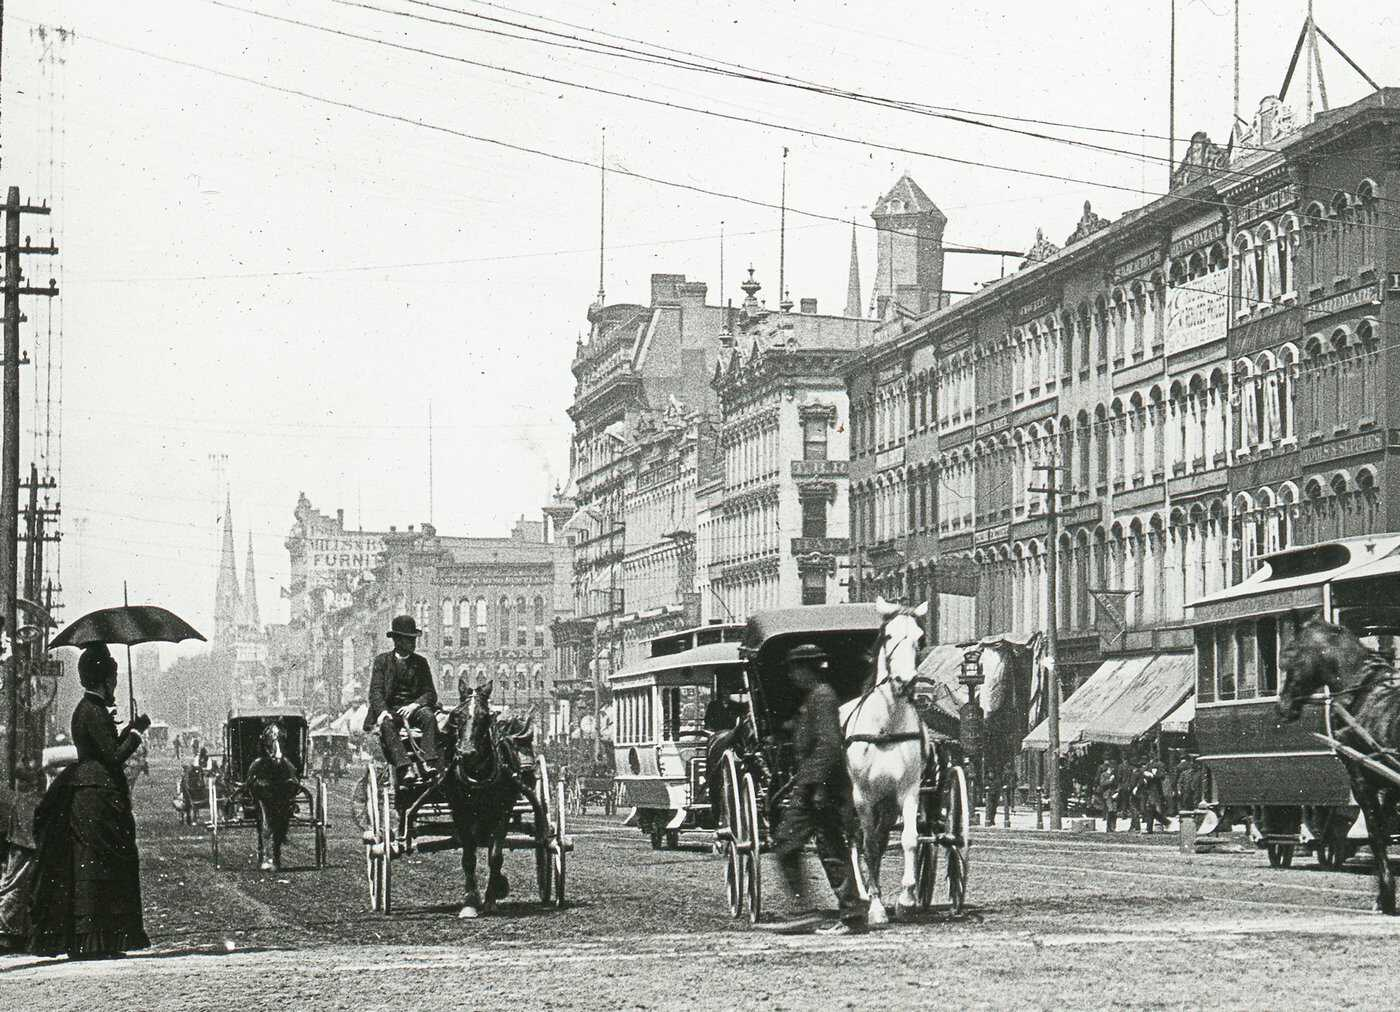 Downtown detroit c 1880 courtesy detroit public library burton collection